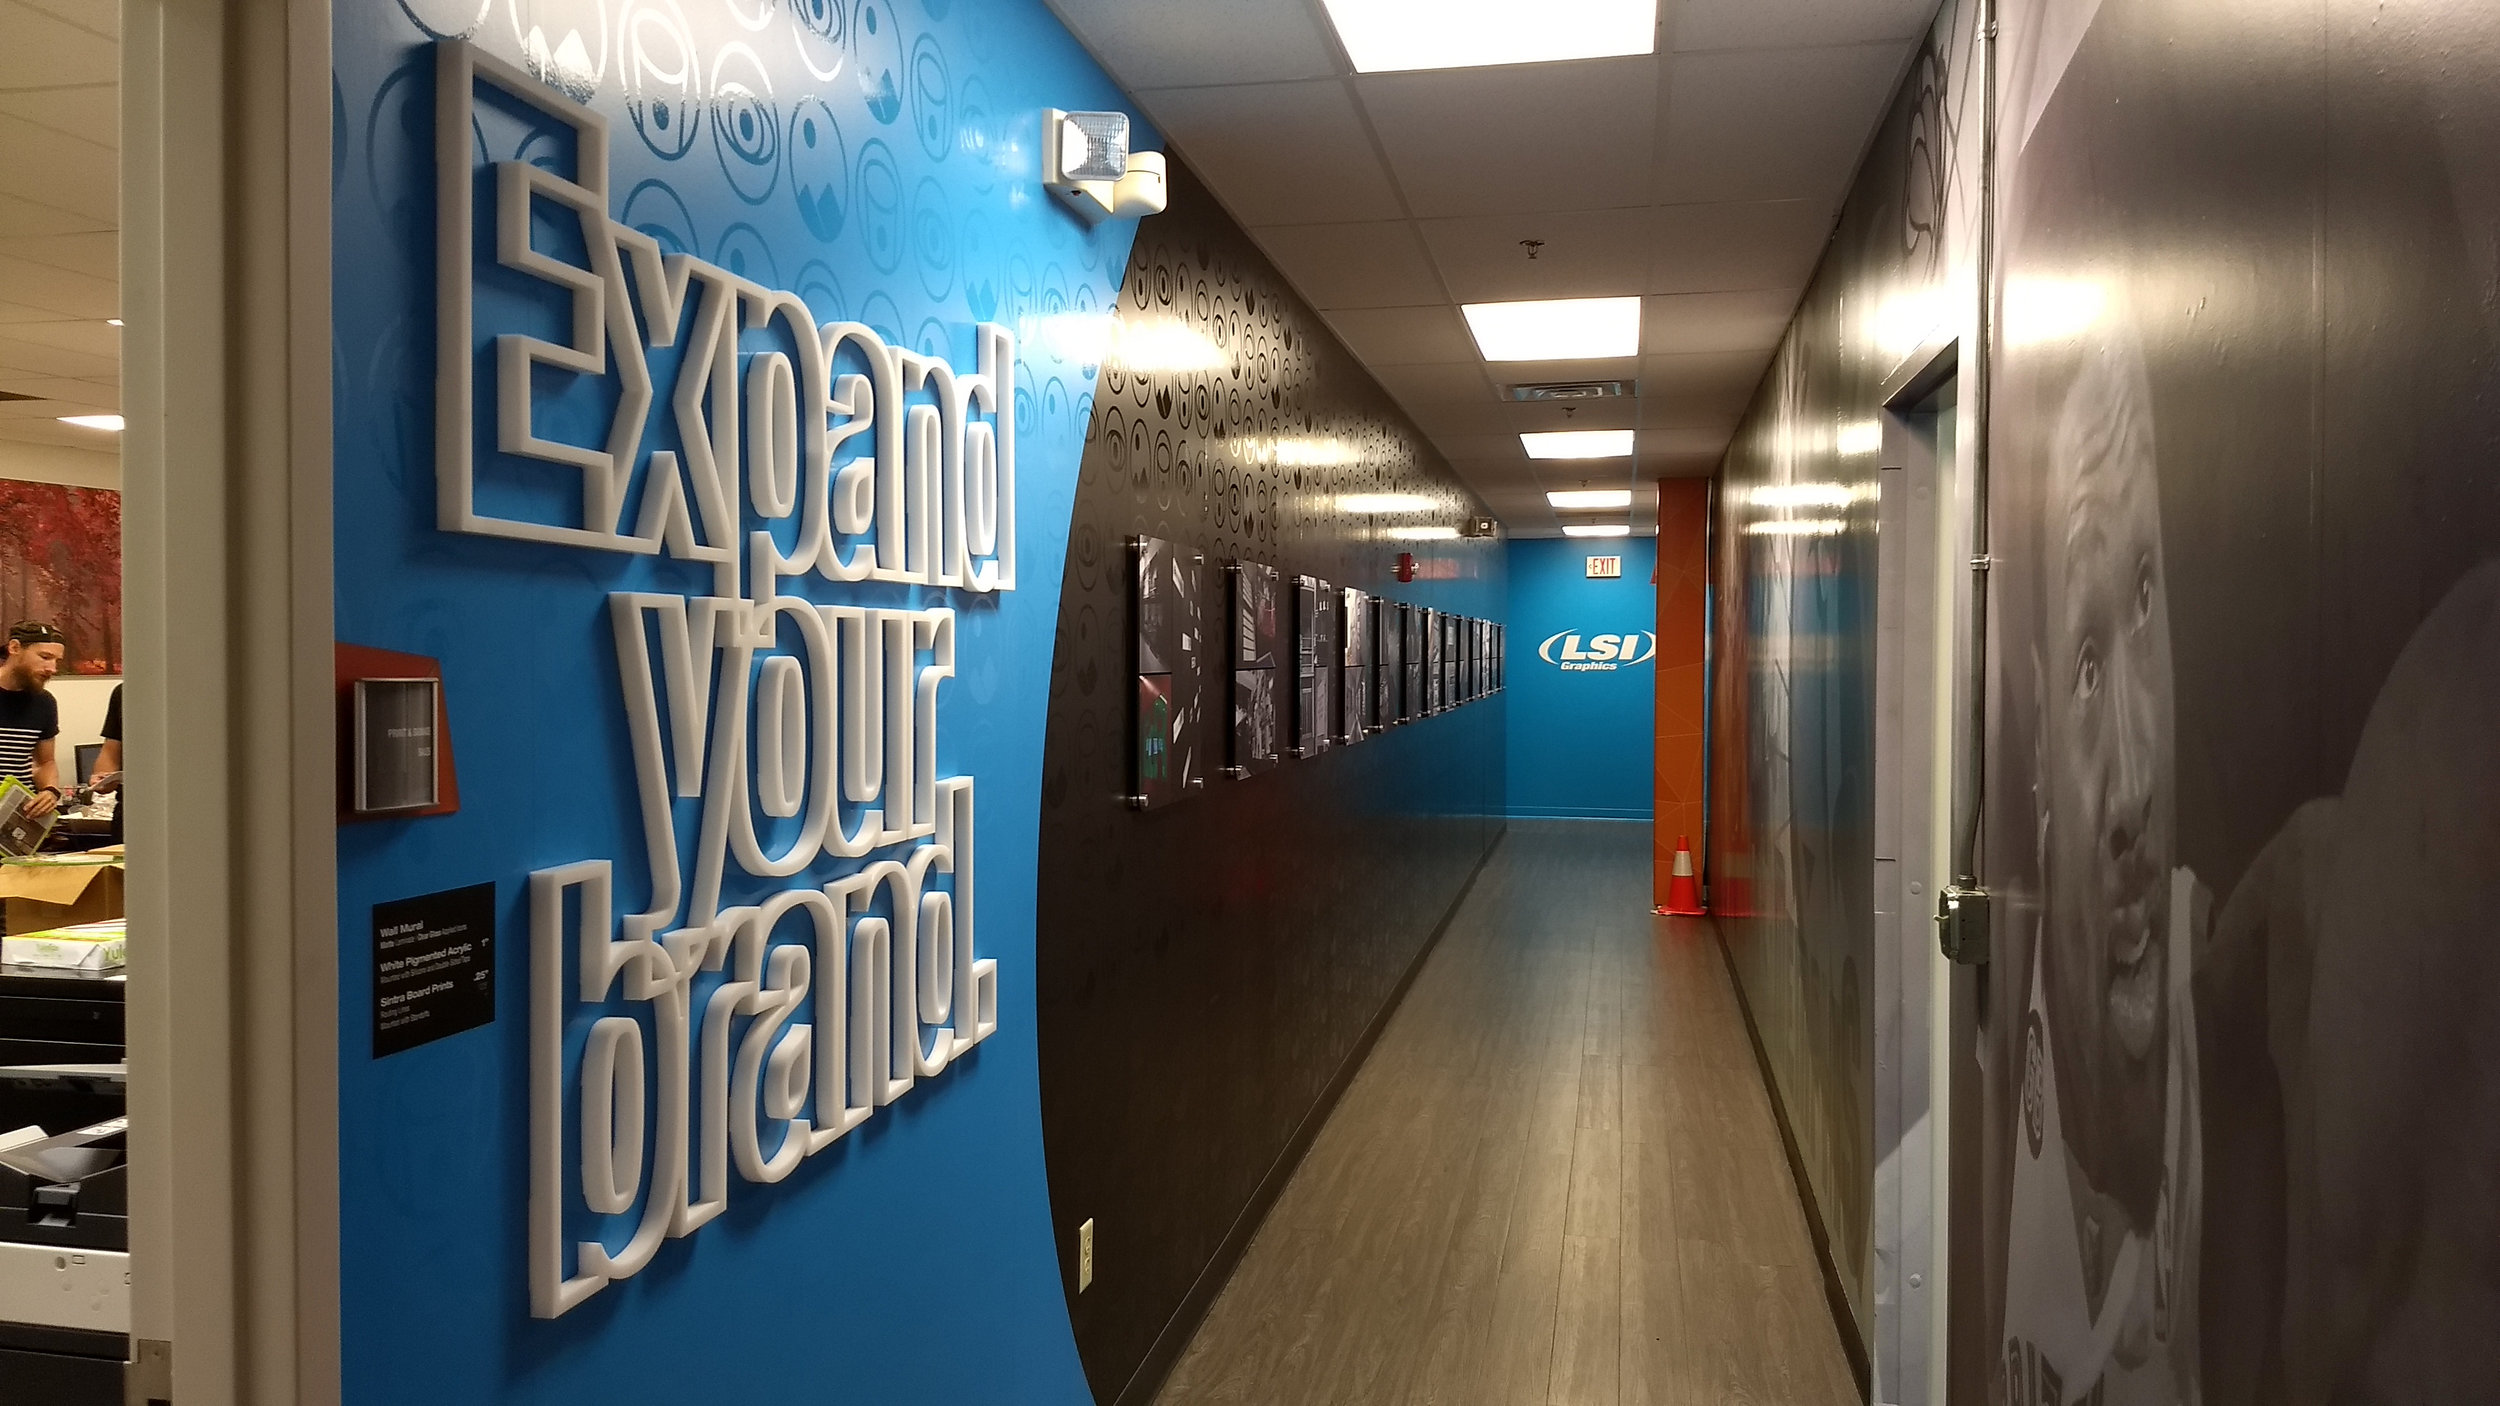 LSIGraphics_Environmental-Graphics_Expand-Your-Brand-Wall_Dreamcapture_Memphis-TN_6